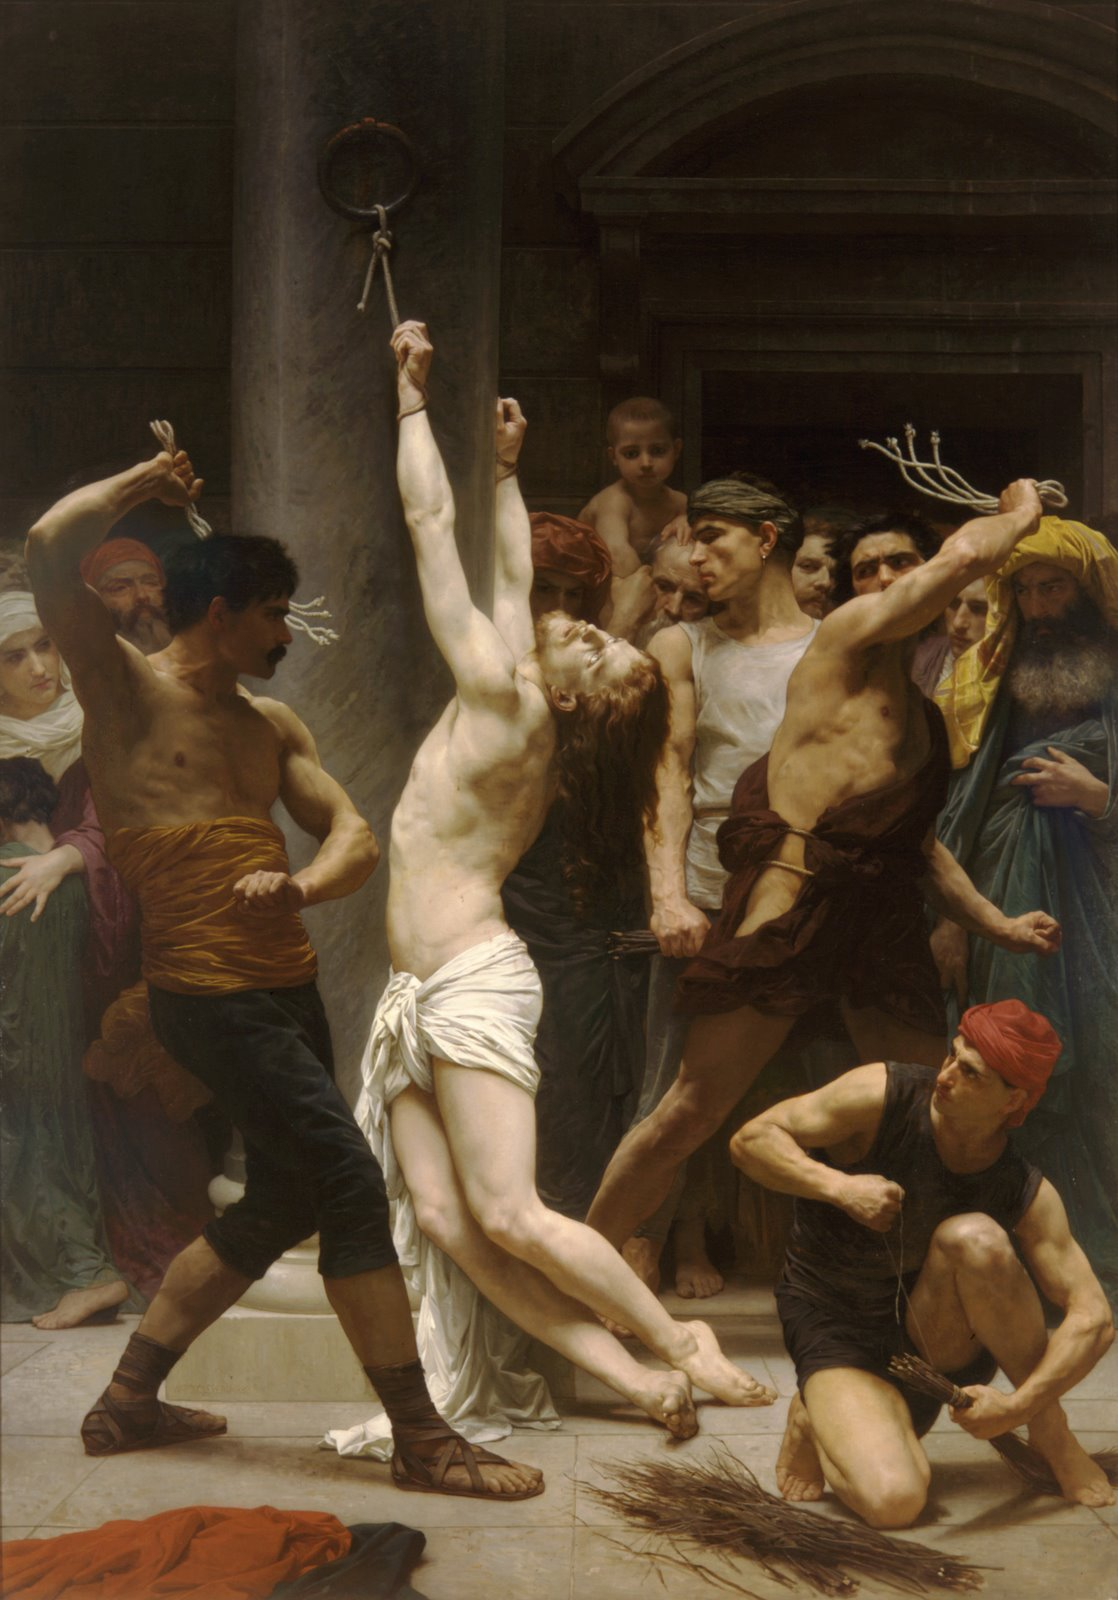 [William-Adolphe_Bouguereau_(1825-1905)_-_The_Flagellation_of_Our_Lord_Jesus_Christ_(1880)_.jpg]